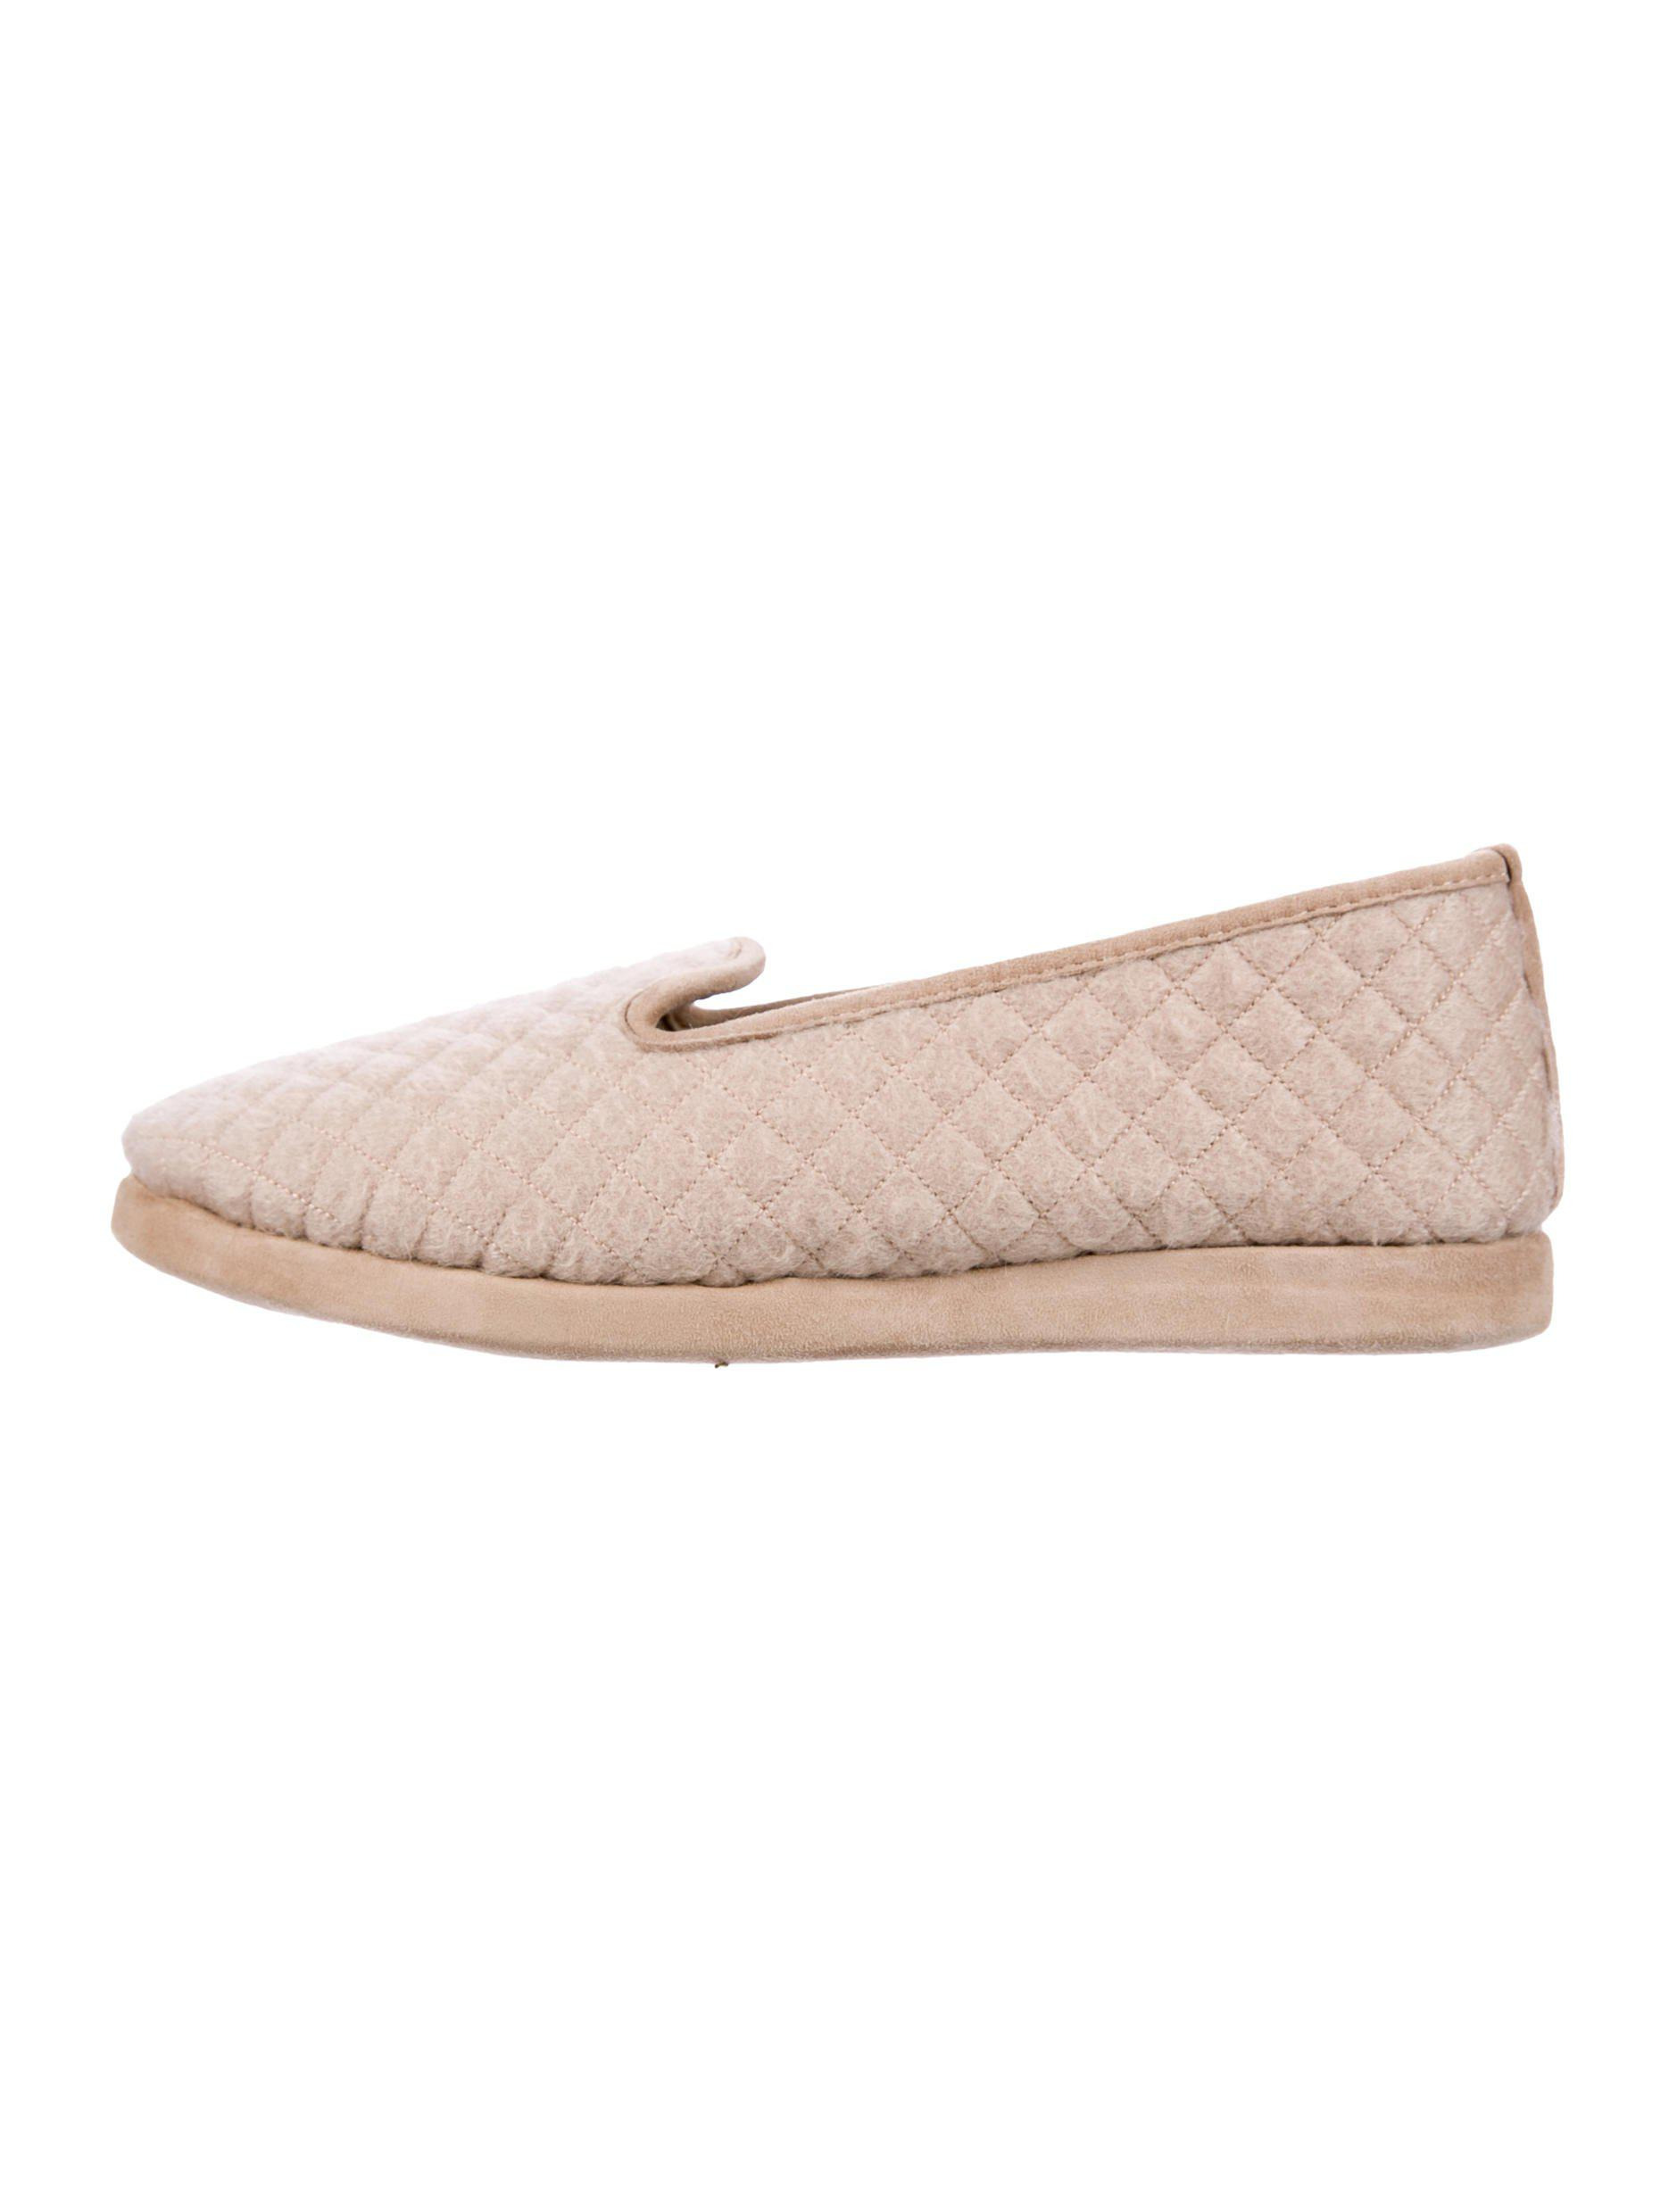 really cheap online free shipping 2015 new Loro Piana Quilted Cashmere Slippers w/ Tags explore cheap online nveN0Zm